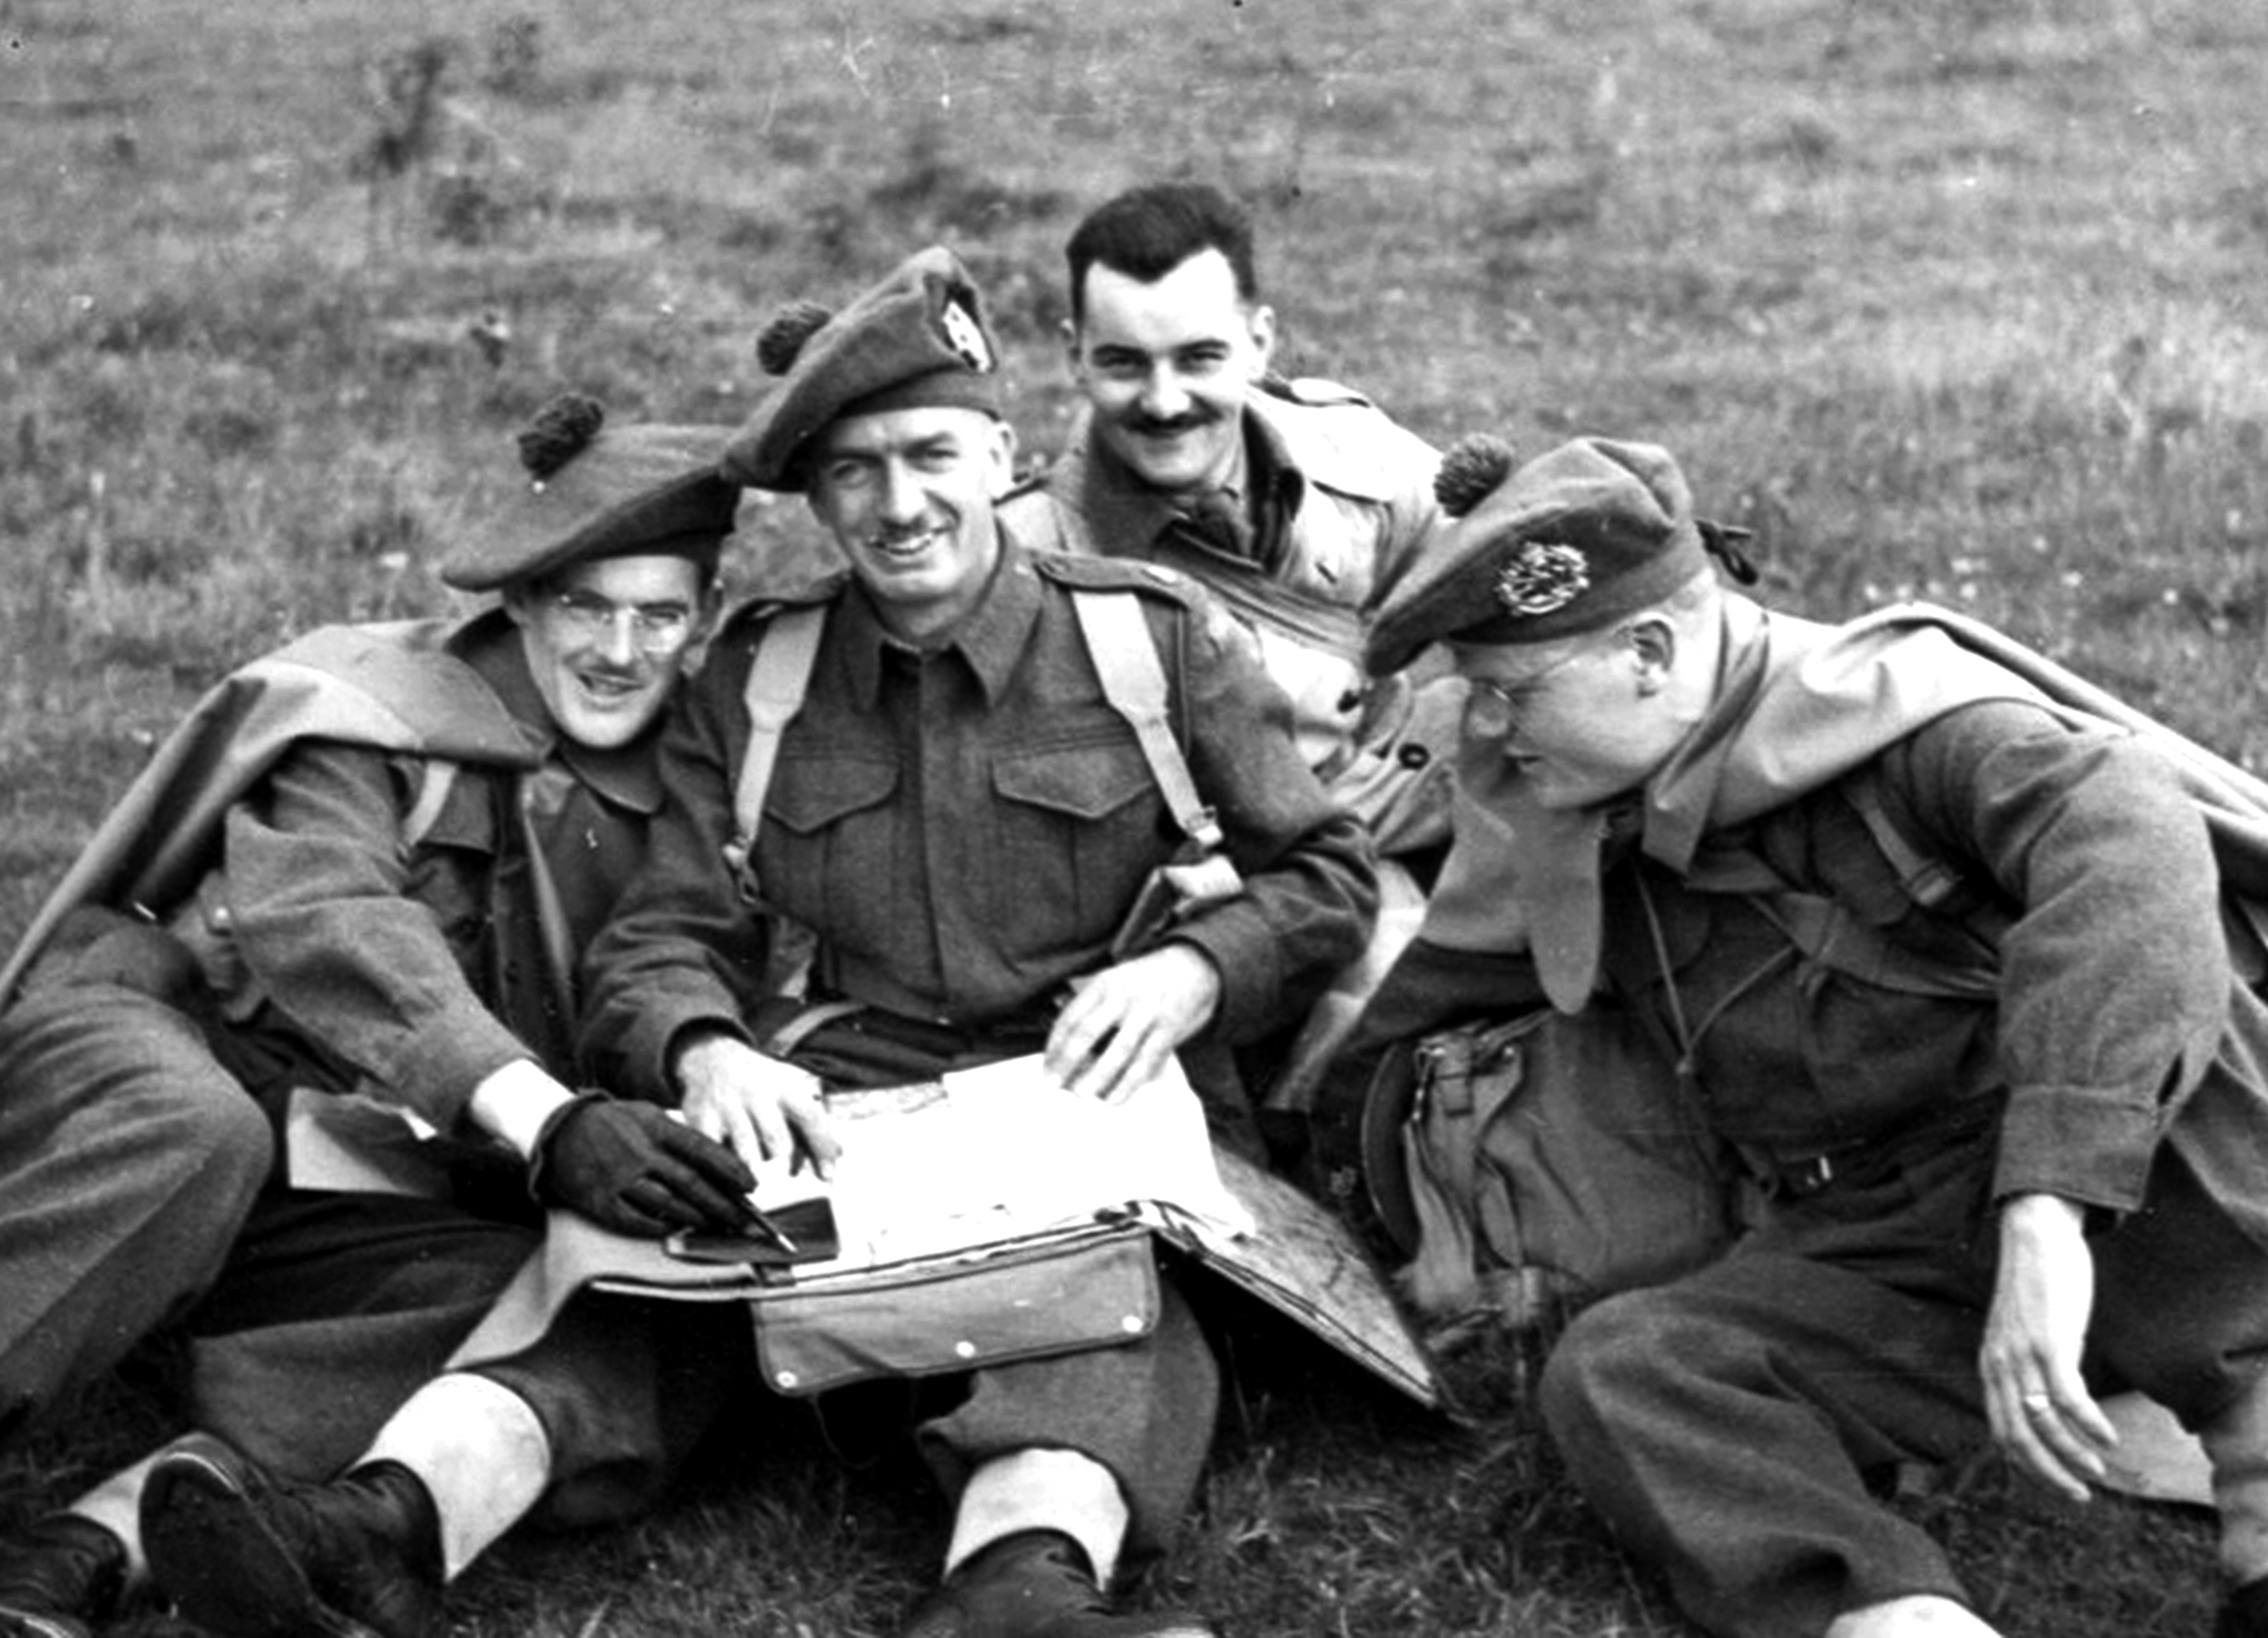 Members of the Lorne Scots Regiment pose for a photo while working, 1942.  Lorne Scots Regimental Museum.